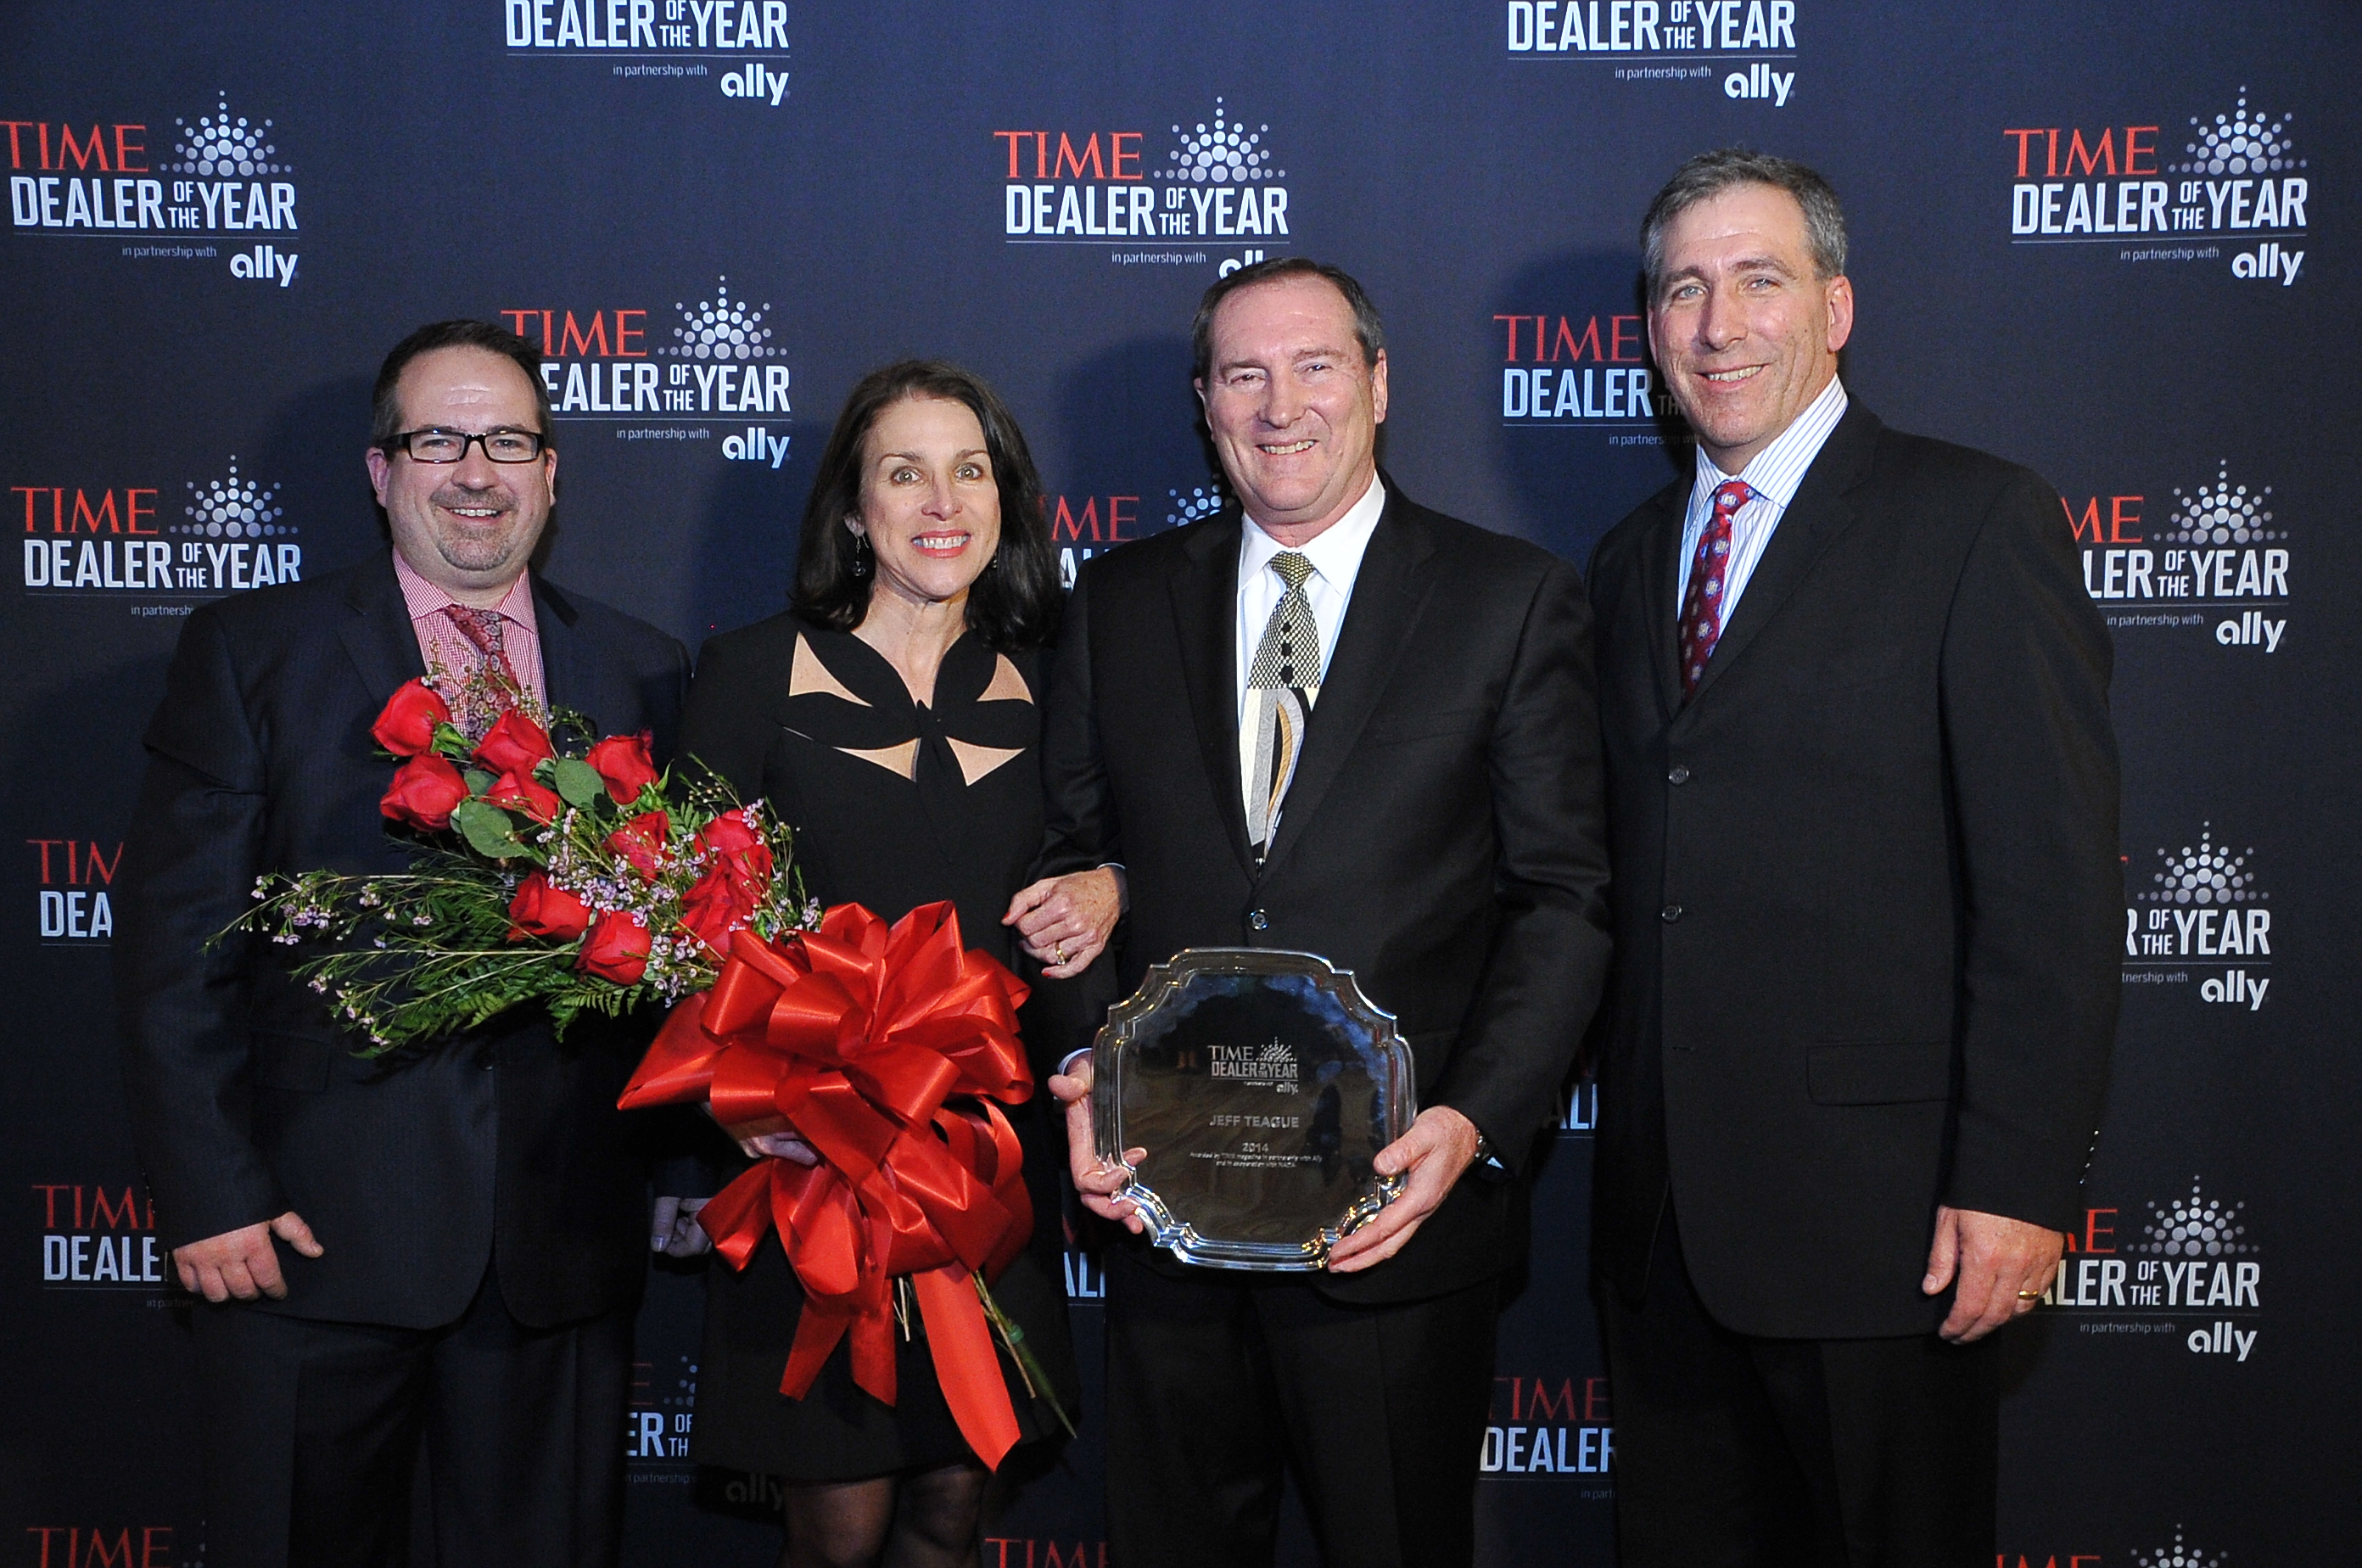 images ally financial ally financial from left moritz loew of time sarah and jeff teague the 2014 time dealer of the year and tim russi ally financial president of auto finance at the 2014